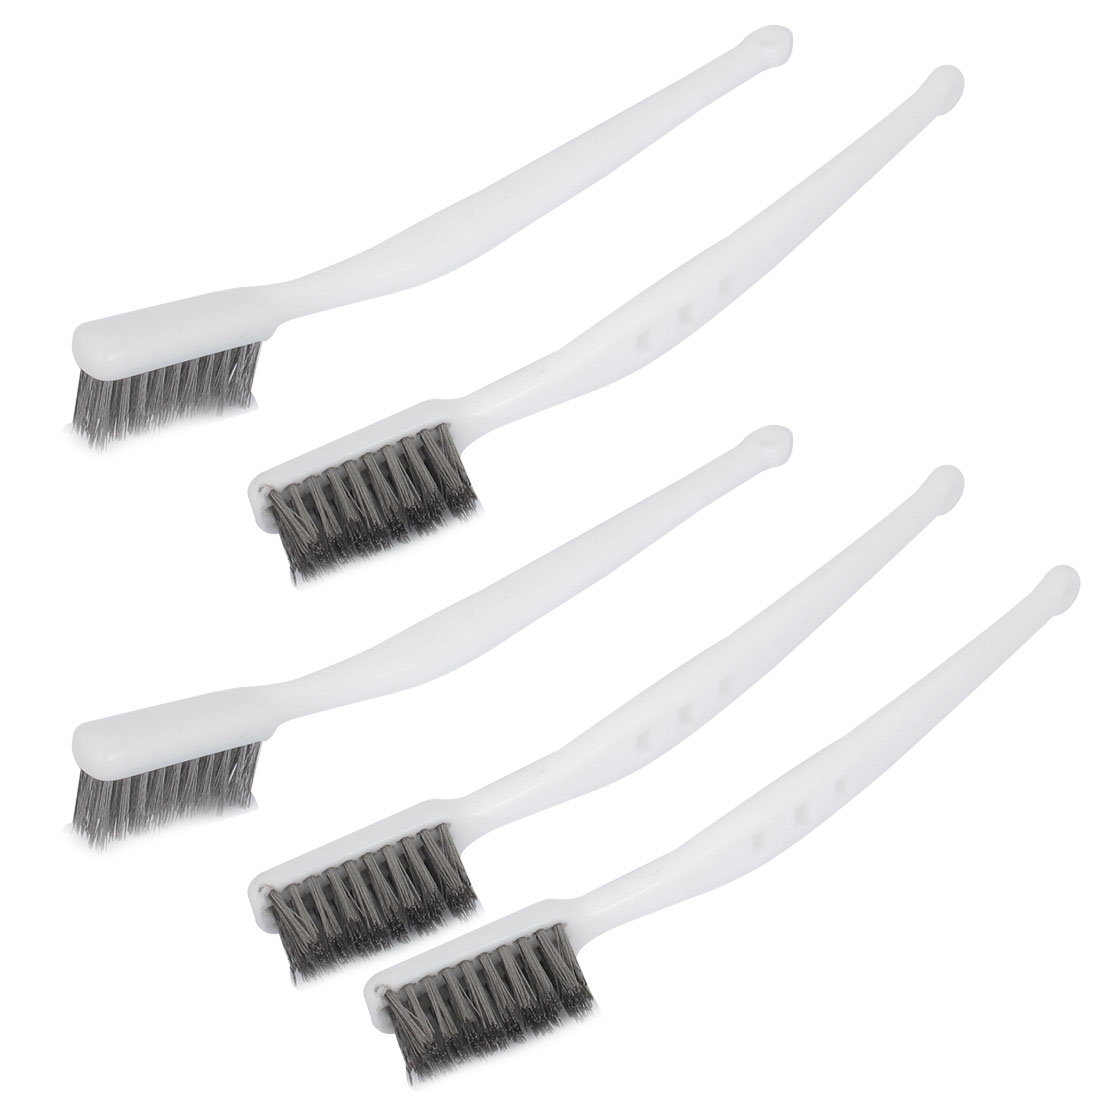 White Plastic Handle Stainless Steel Wire Cleaning Tooth Brush 5pcs